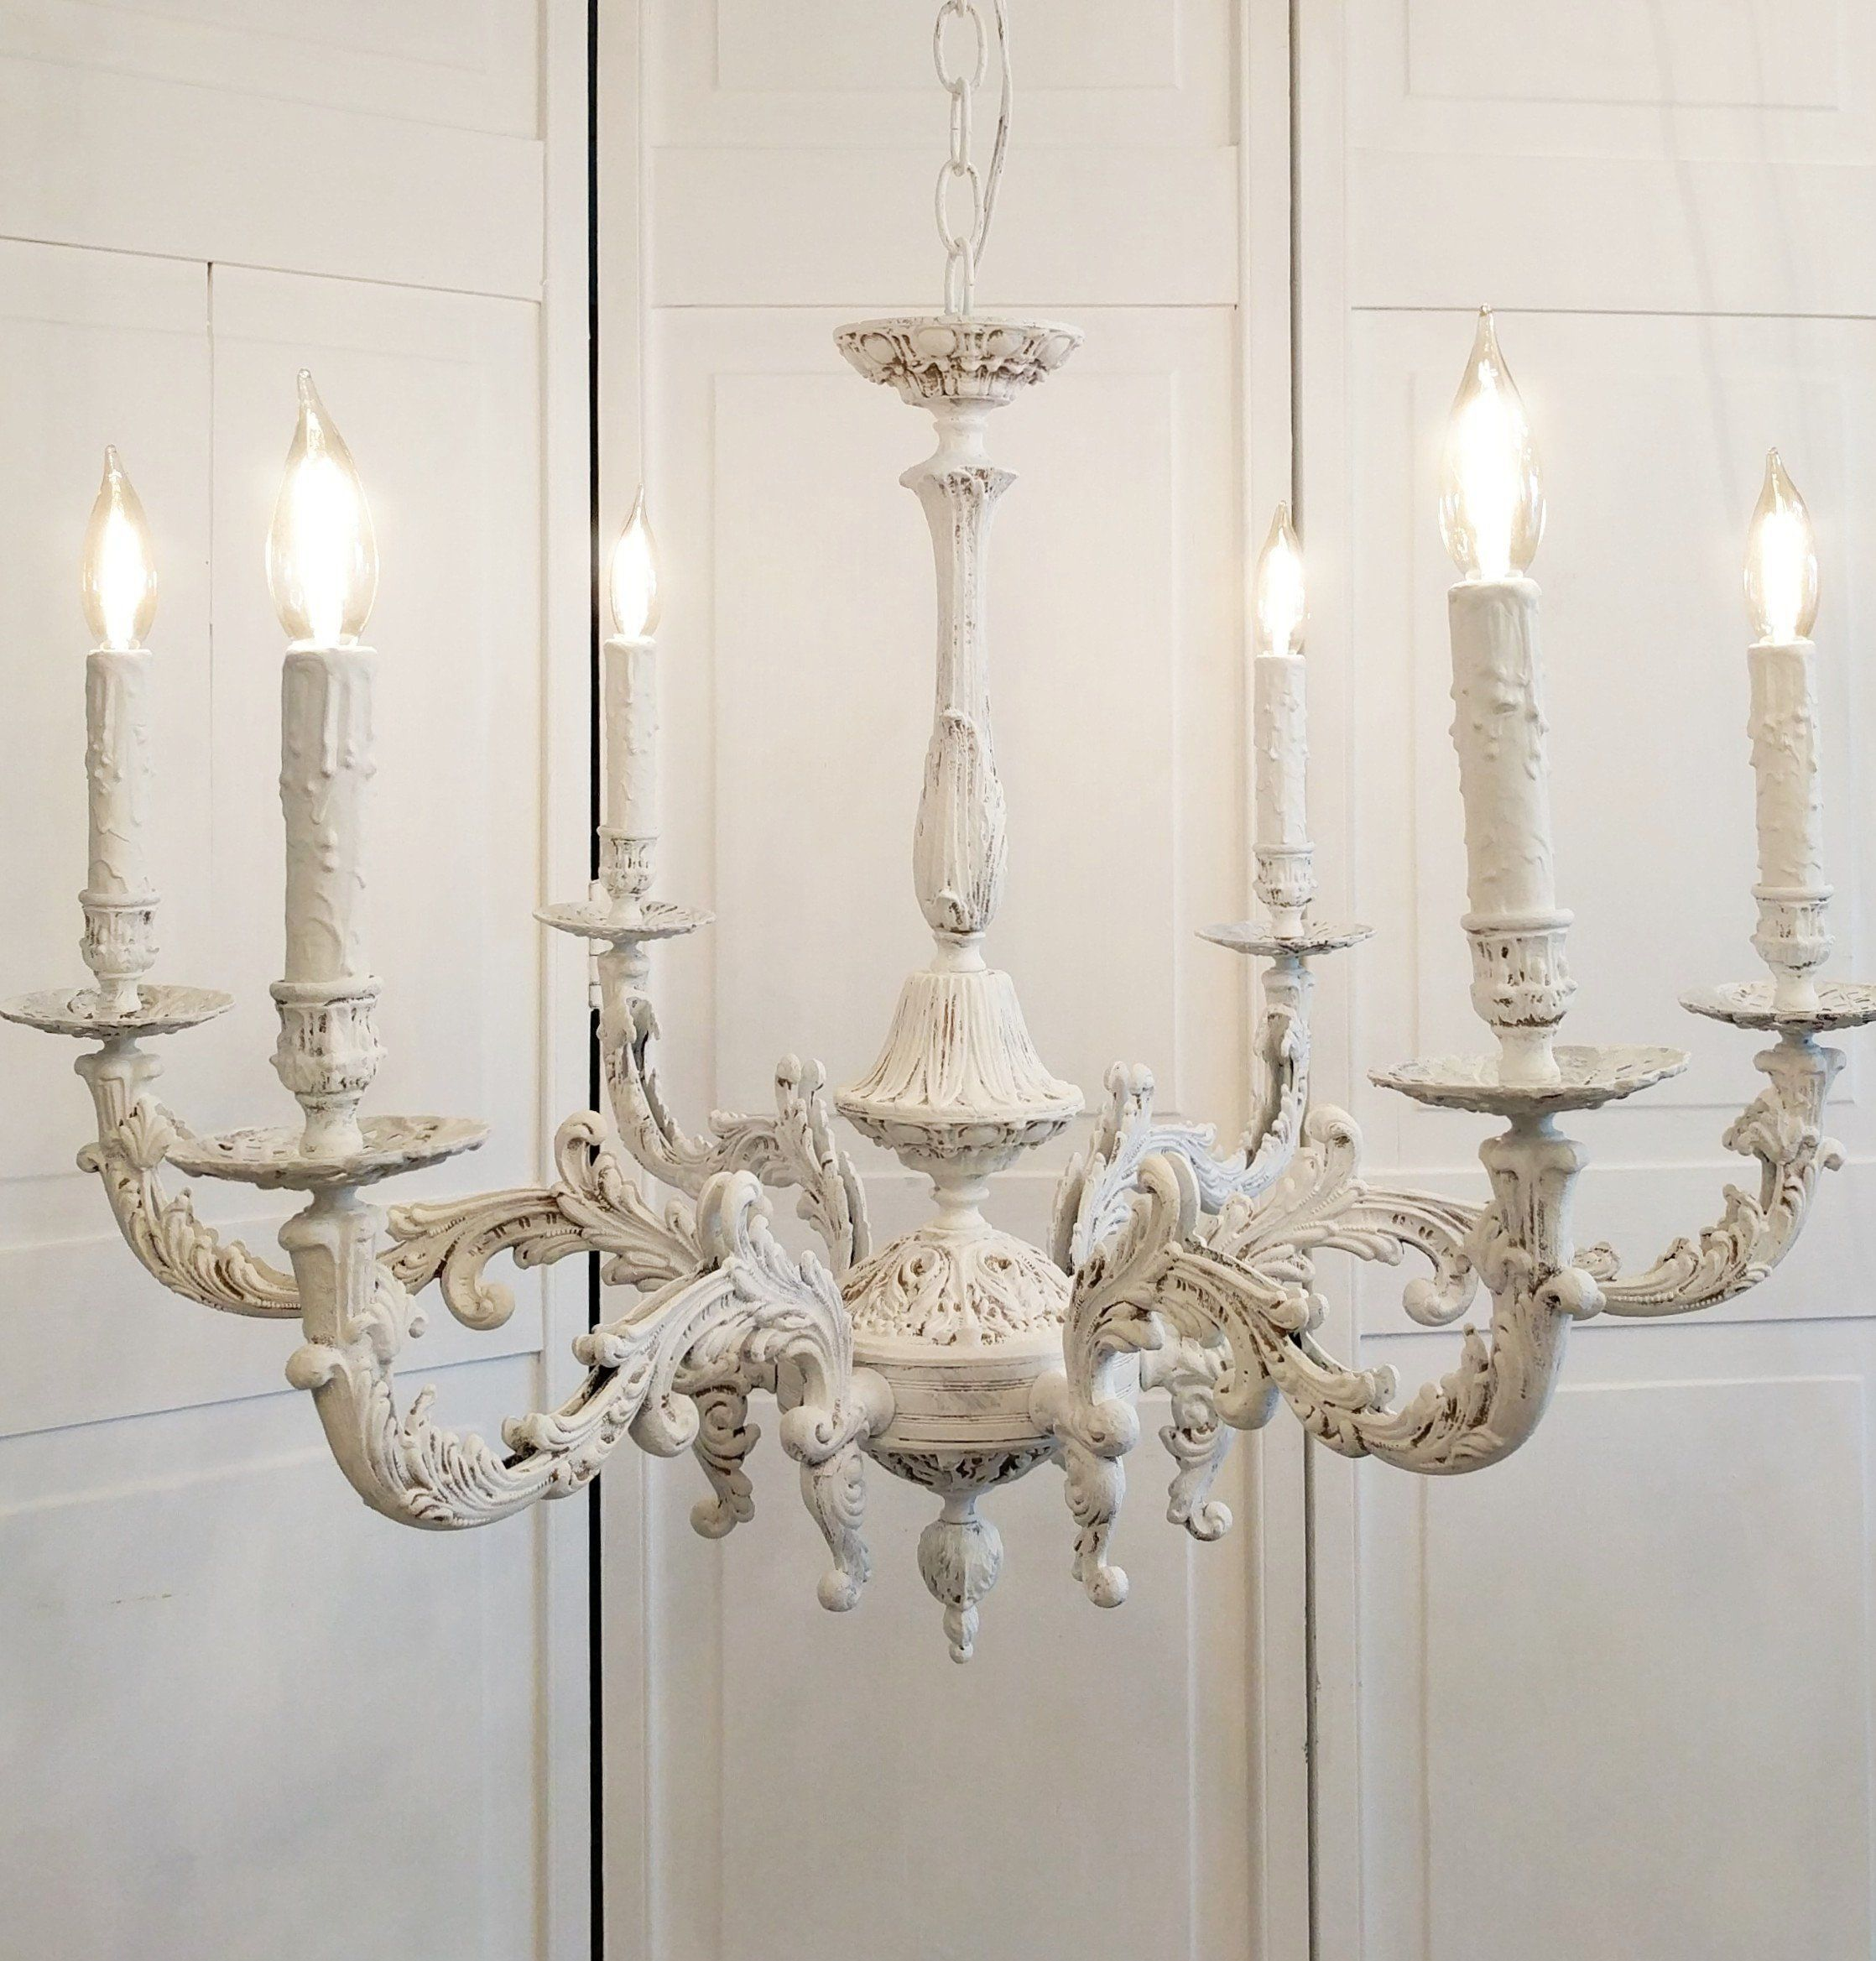 6light Antique Bespoke Chandelier Chic Franchesca French